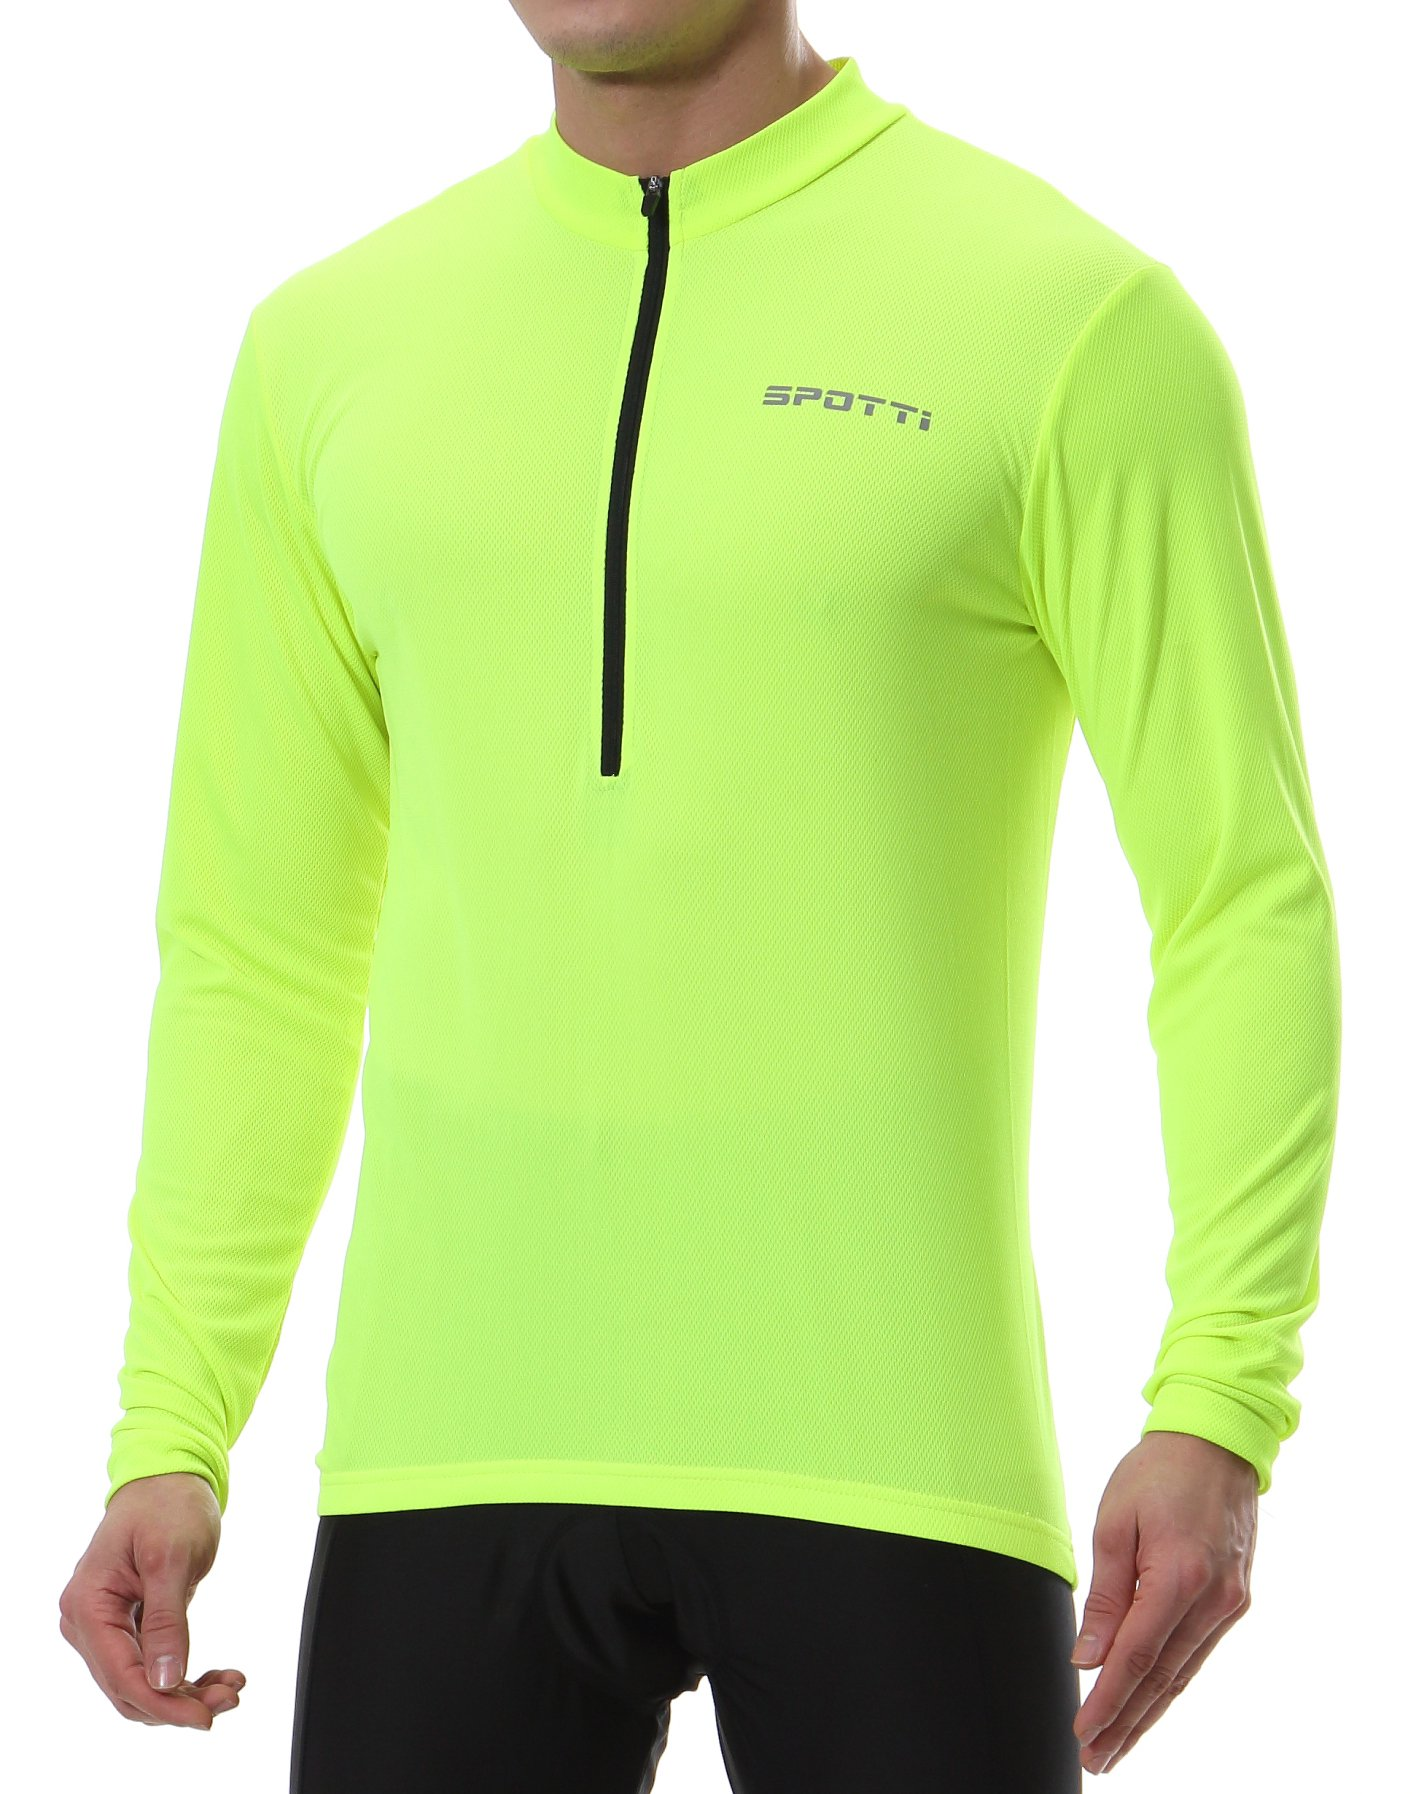 Spotti Men's Long Sleeve Cycling Jersey, Bike Biking Shirt- Breathable and Quick Dry (Chest 36-38 - Small, Yellow)